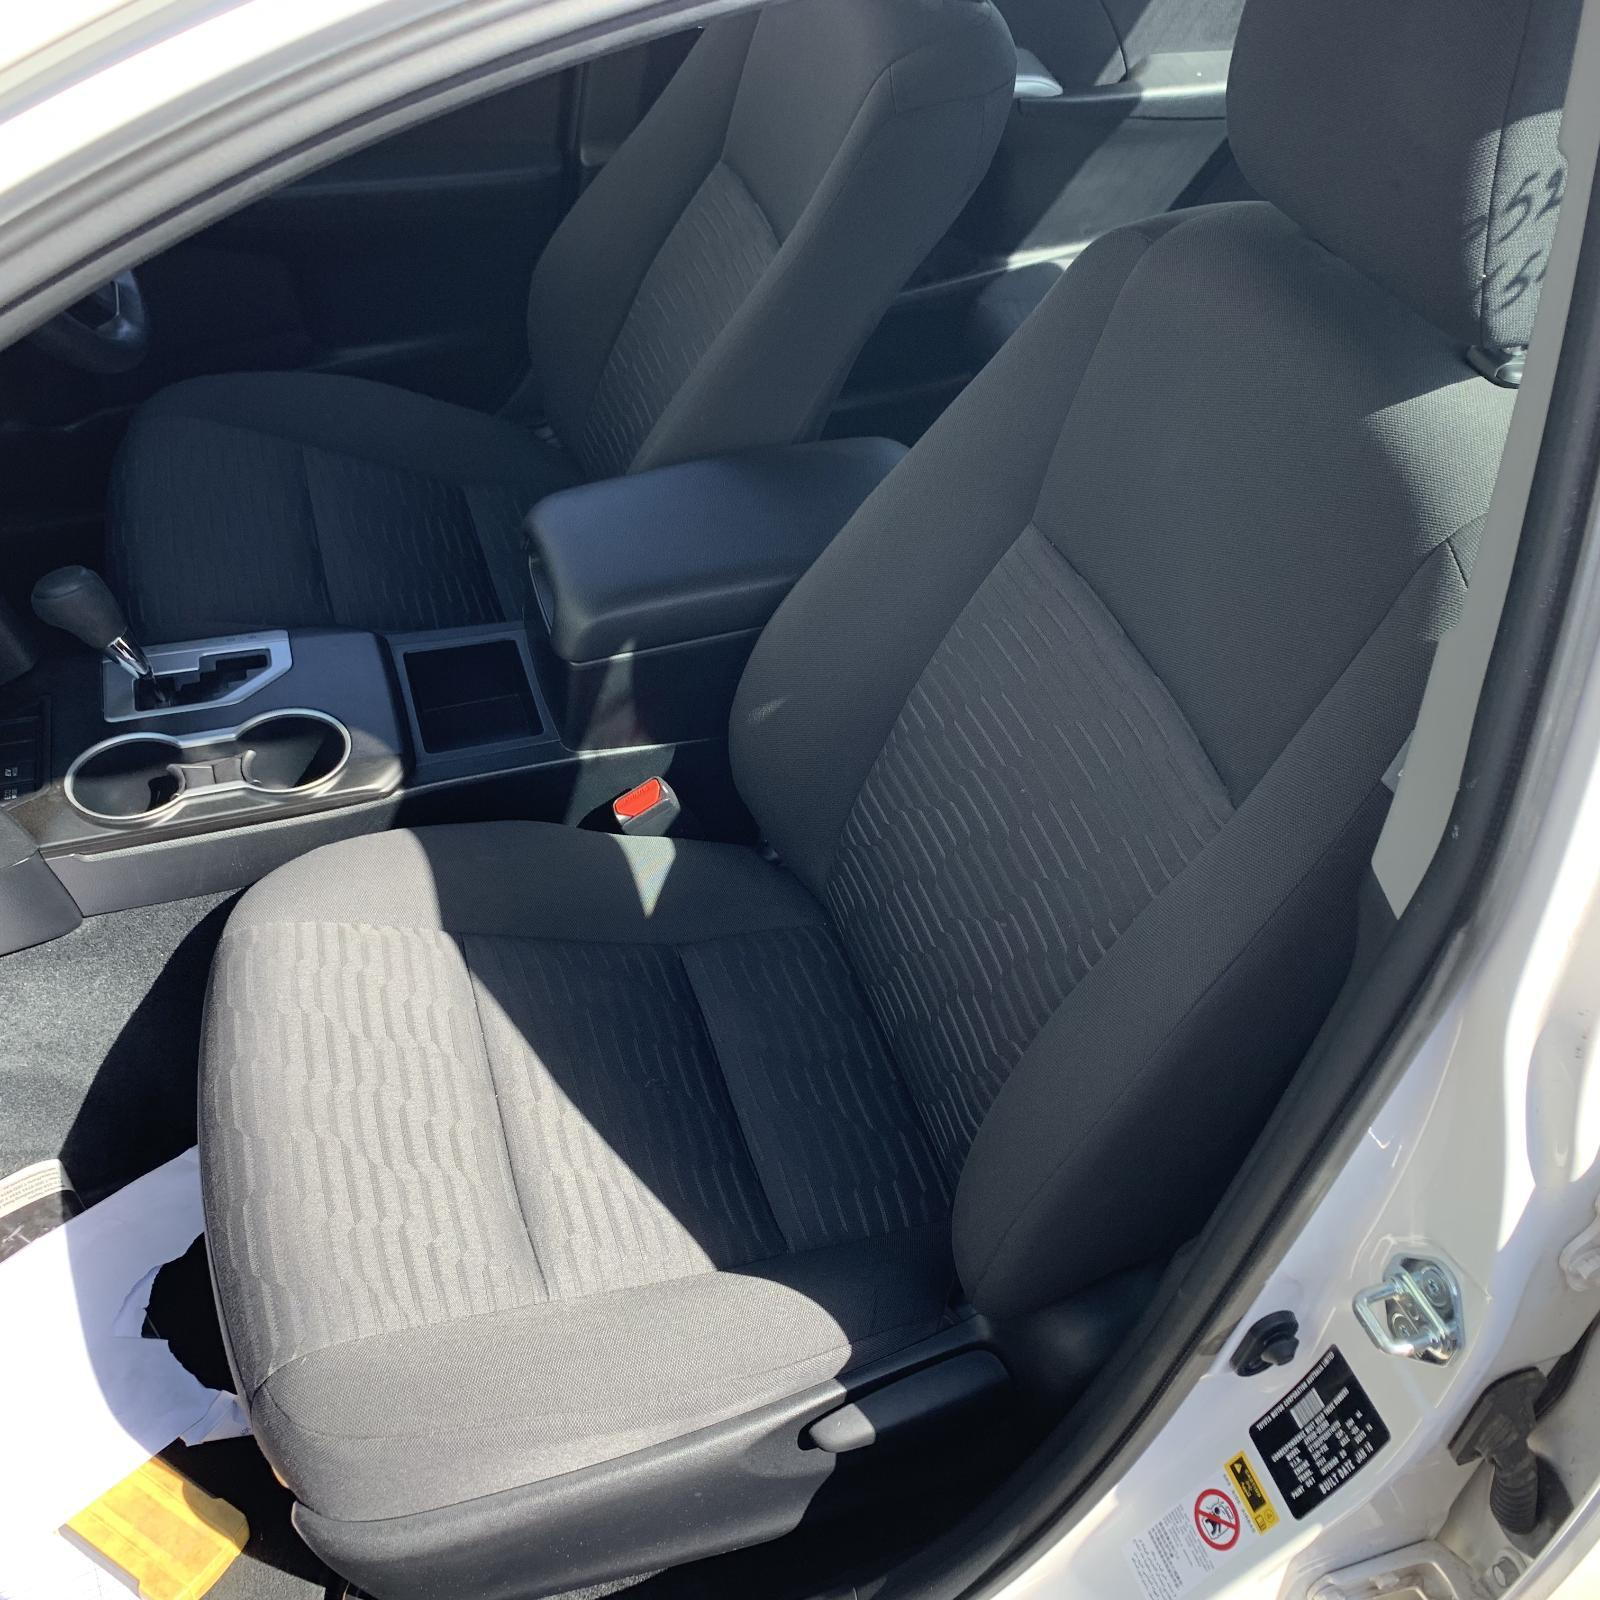 TOYOTA CAMRY, Front Seat, LH FRONT, CLOTH, ALTISE/RZ/ATARA R, ACV50, 12/11-10/17